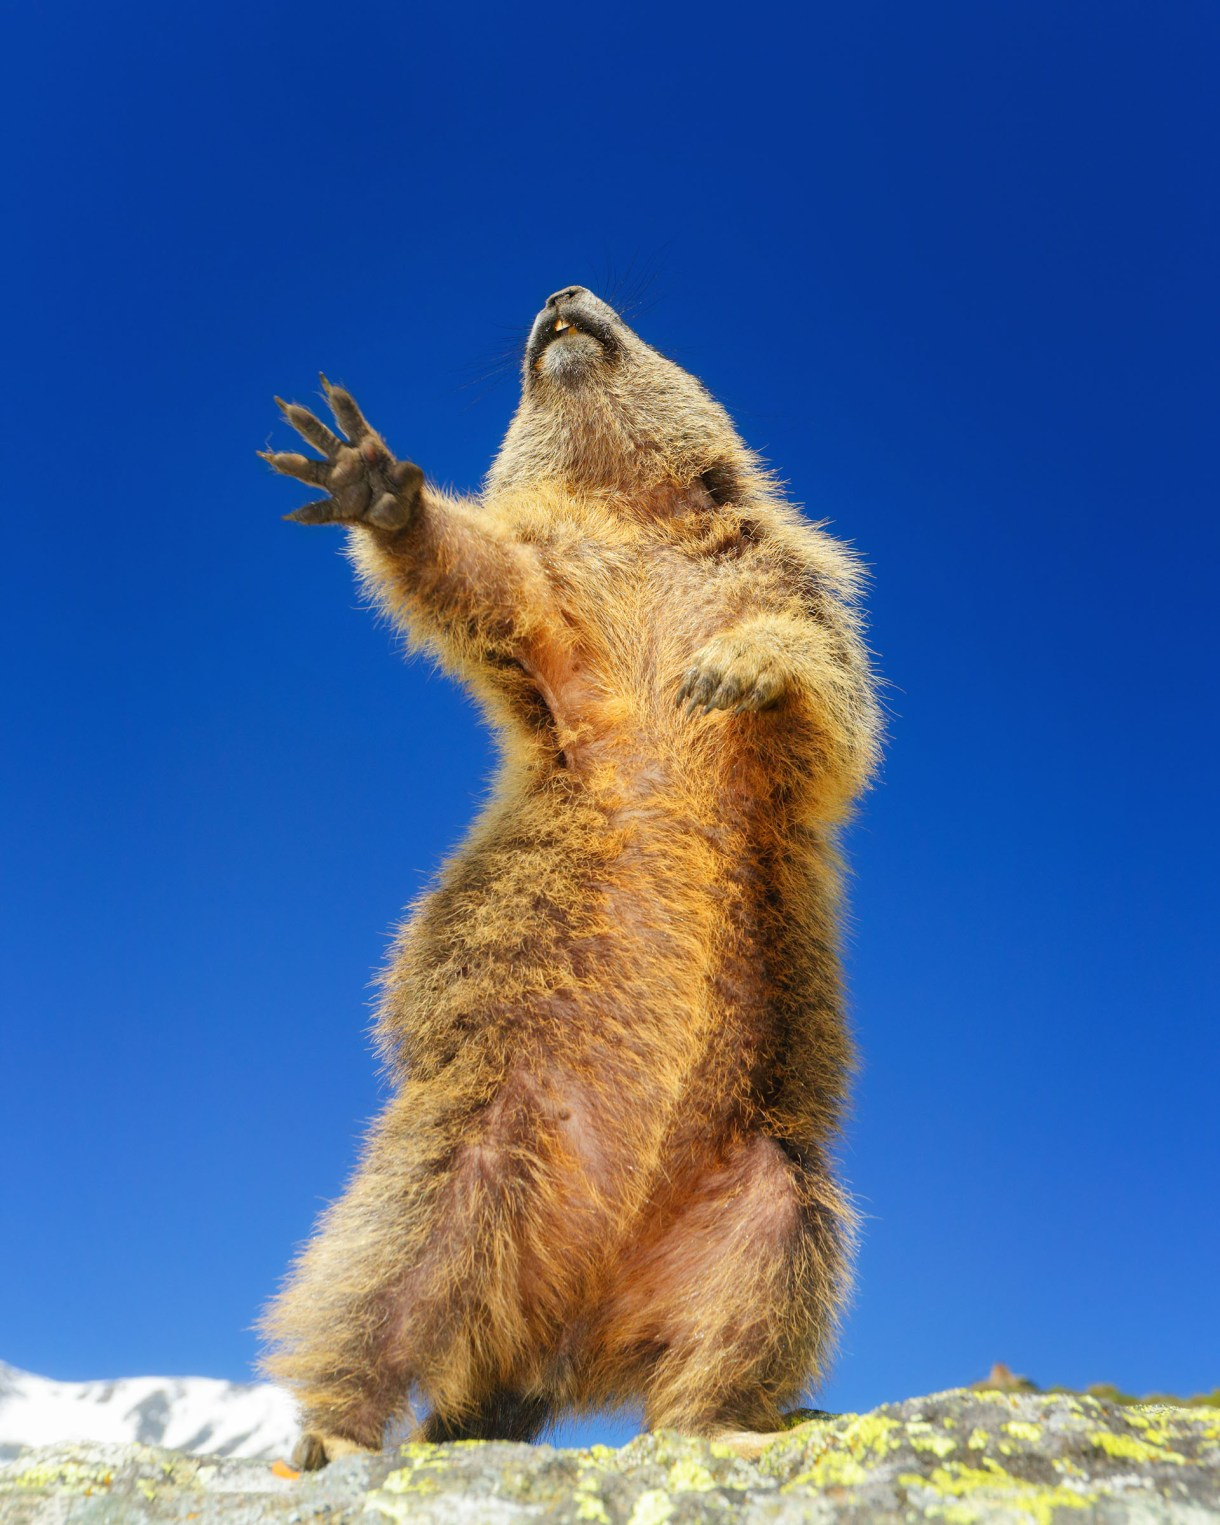 (Martina Gebert/ The Comedy Wildlife Photography Awards 2019)